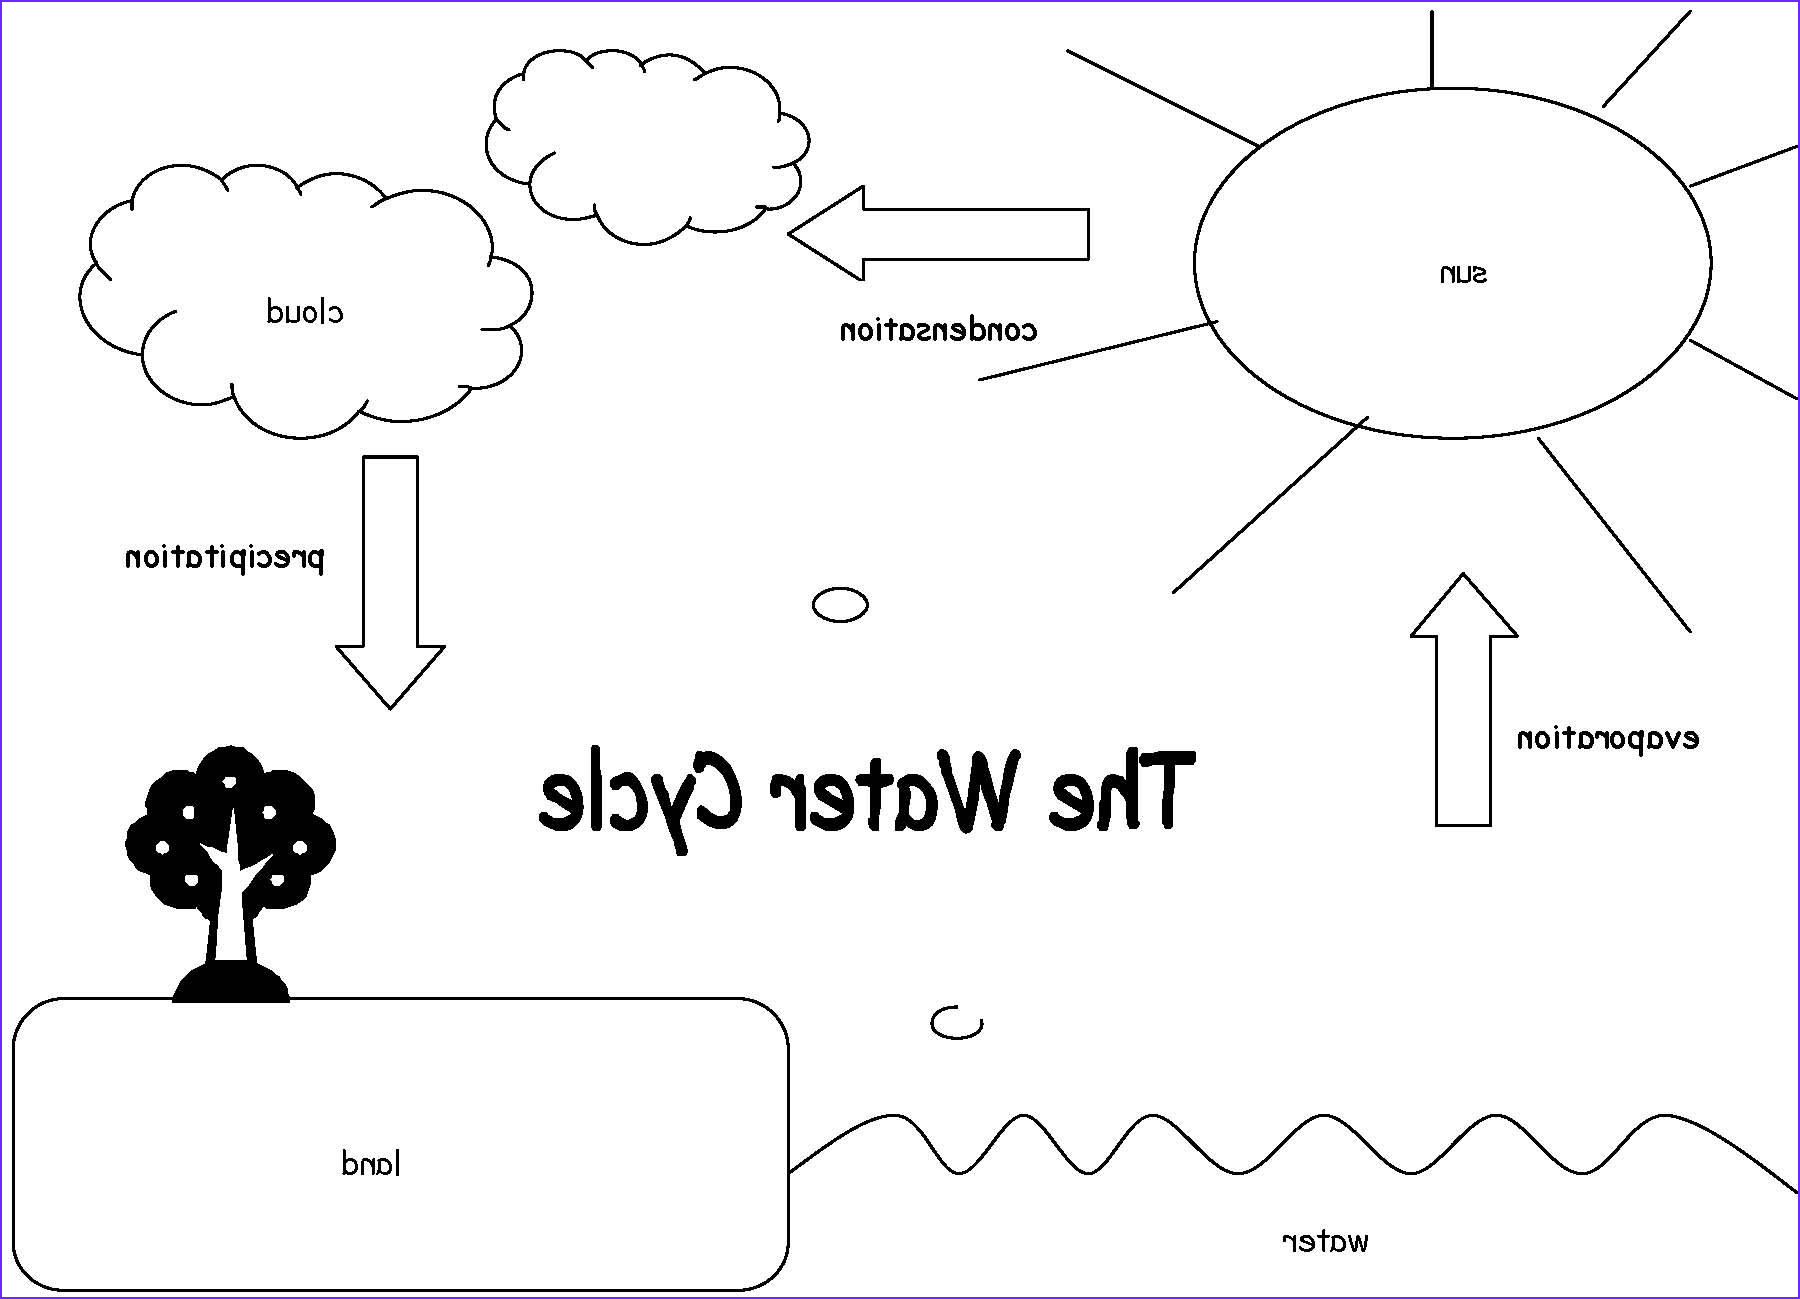 Water Cycle Coloring Pages Cool Image Water Cycle Coloring Pages The Coloring Pages